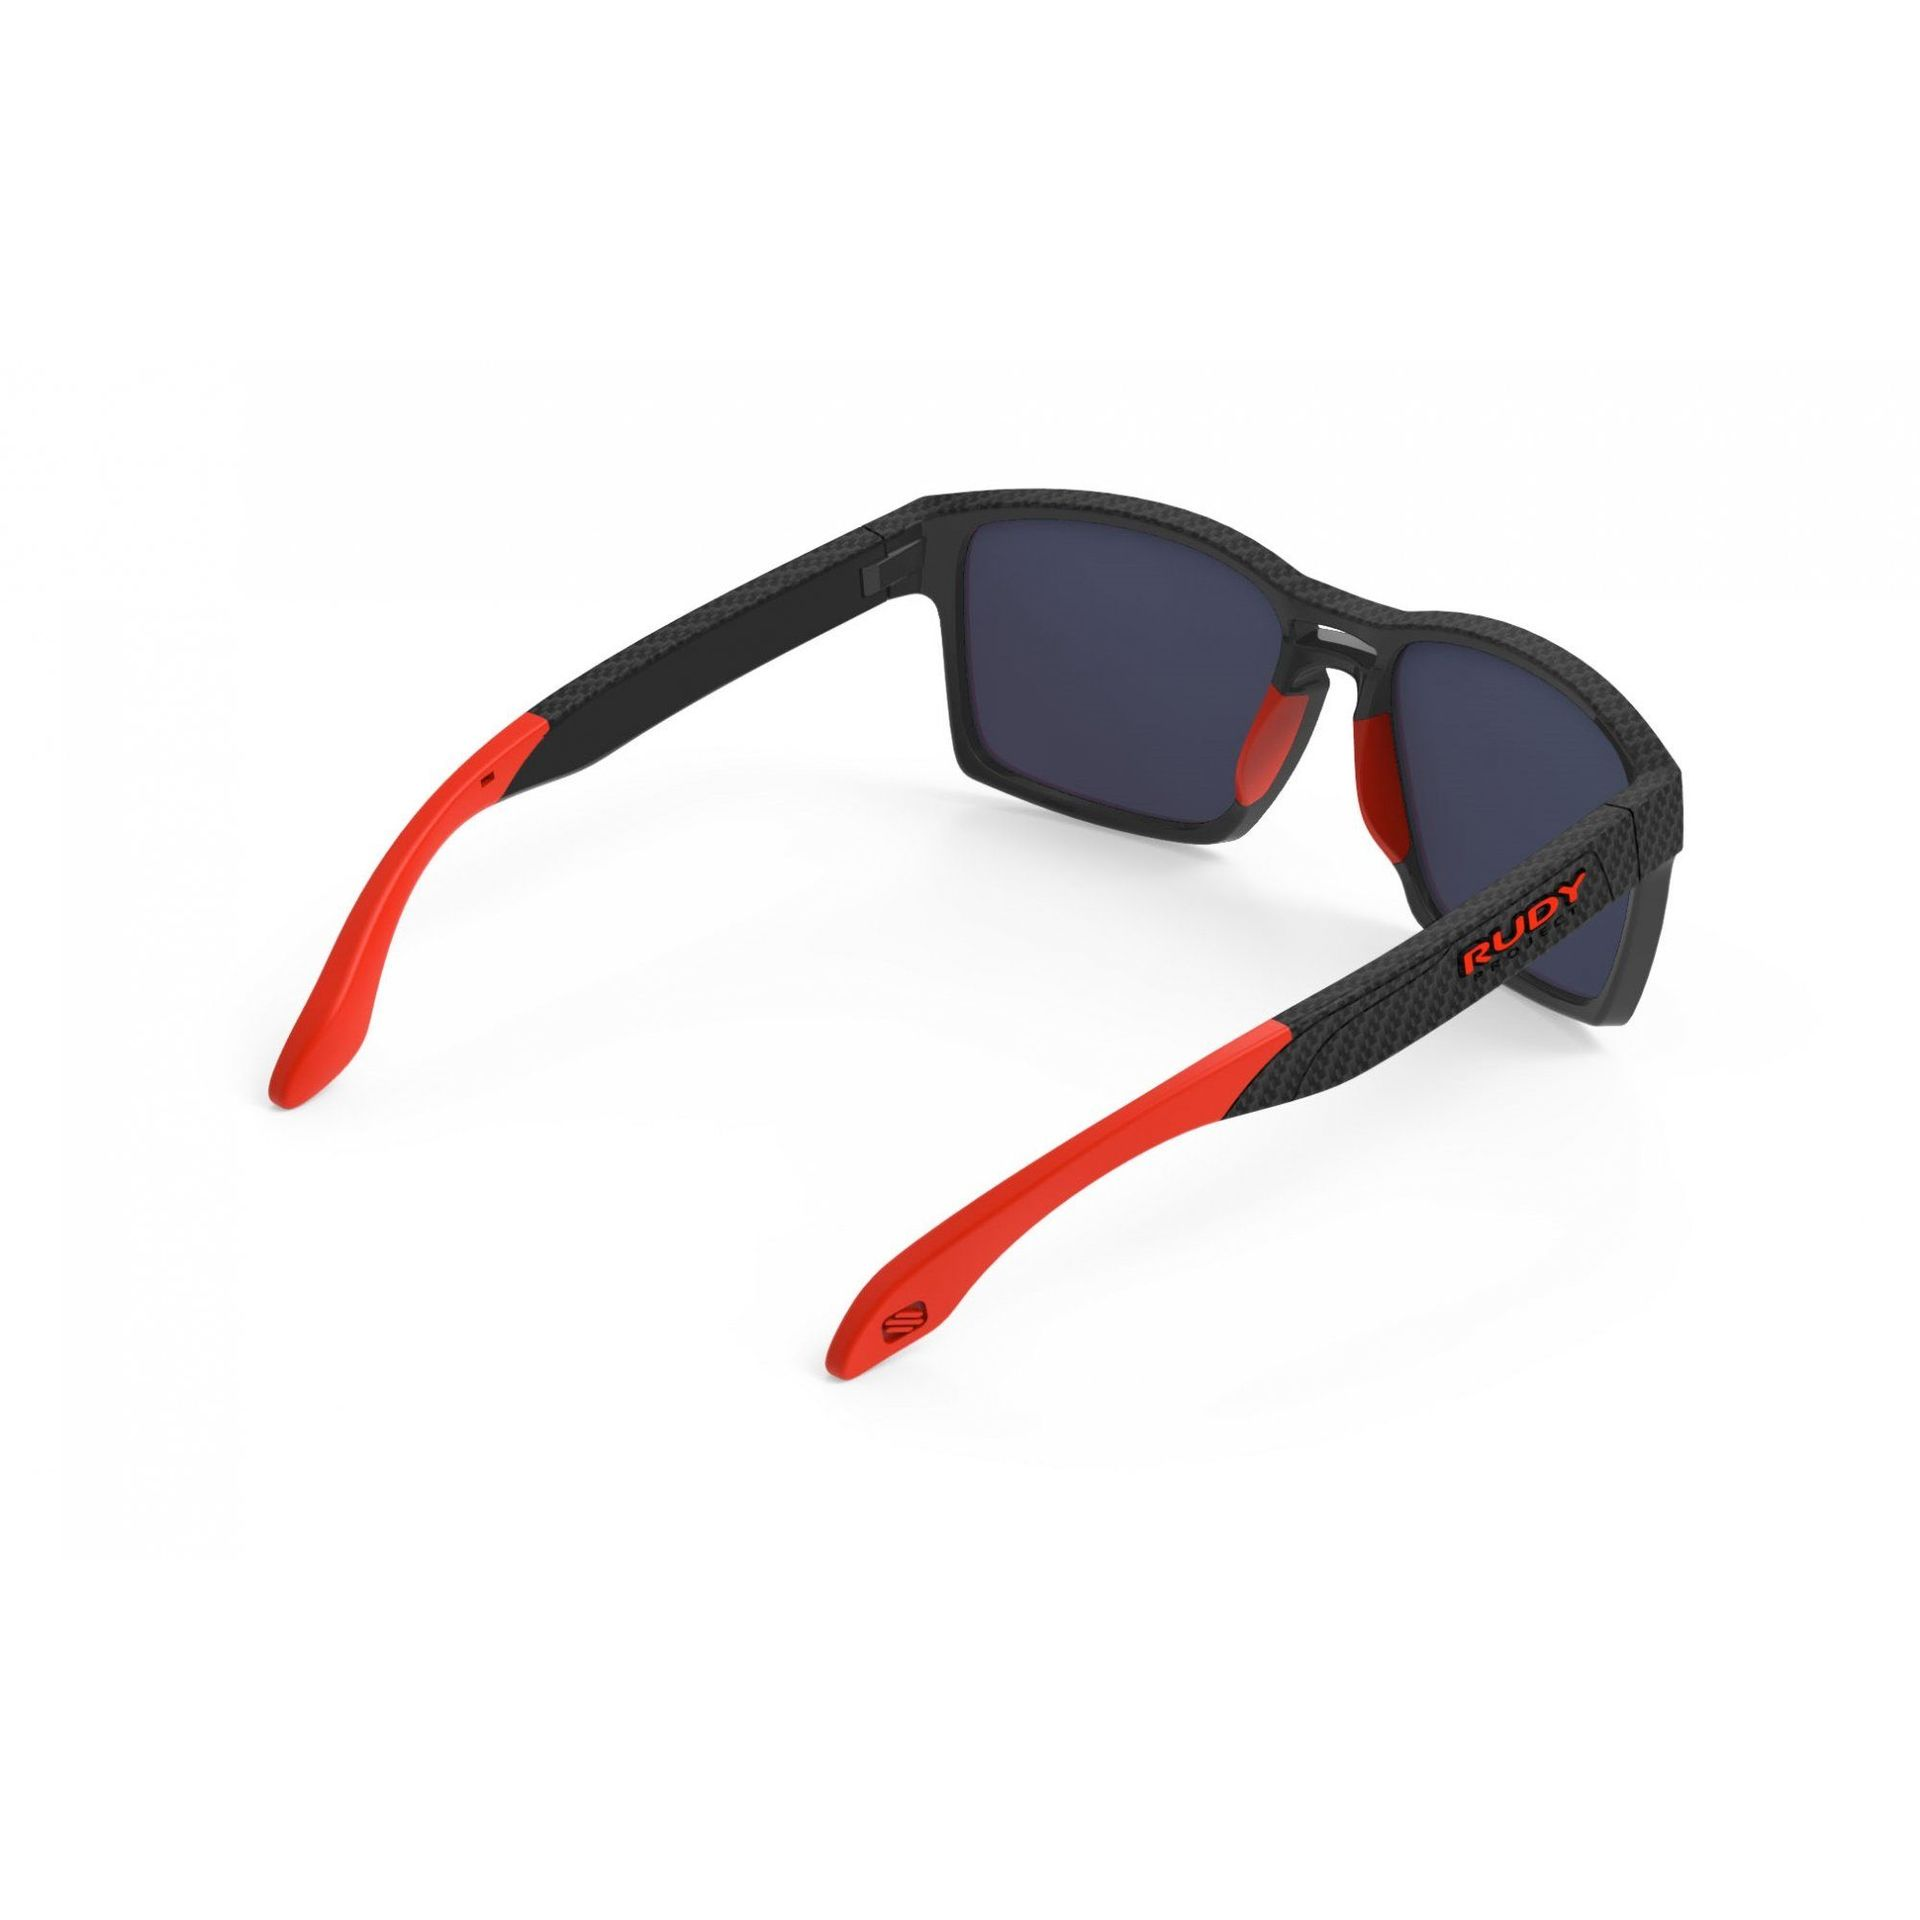 OKULARY RUDY PROJECT SPINAIR 57 CARBONIUM + ML RED SP573819 5